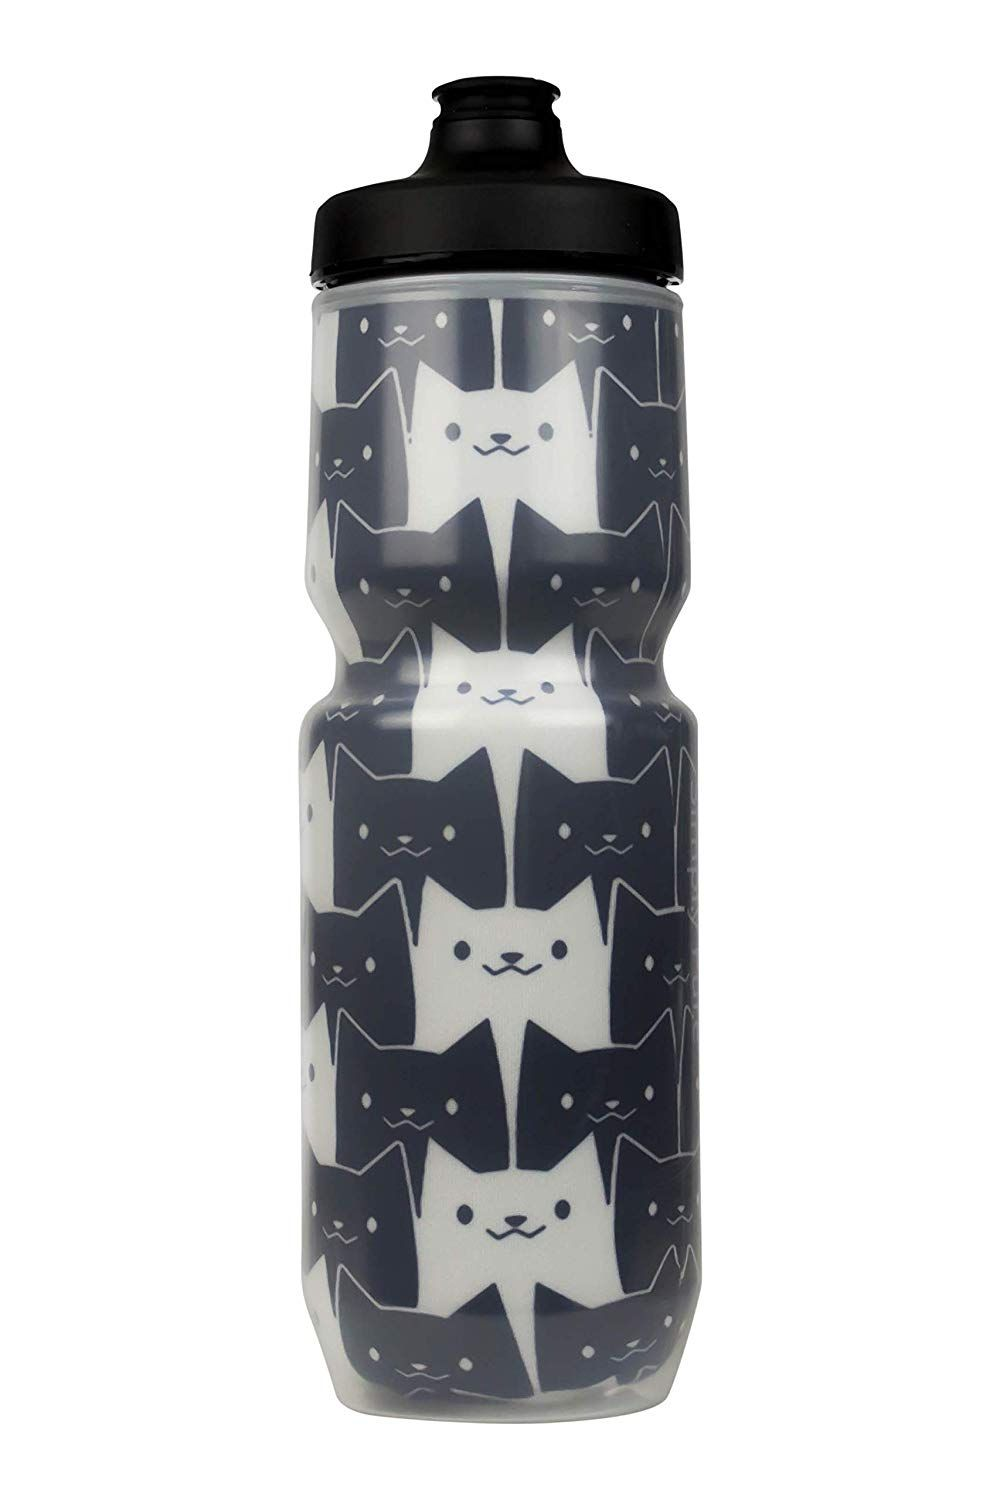 Watergate Cap Limited Edition 20/% Colder Than Other Insulated Bottles Simply Pure Hydration Purist 23 oz Insulated Water Bottle BPA Free Sport Bottle